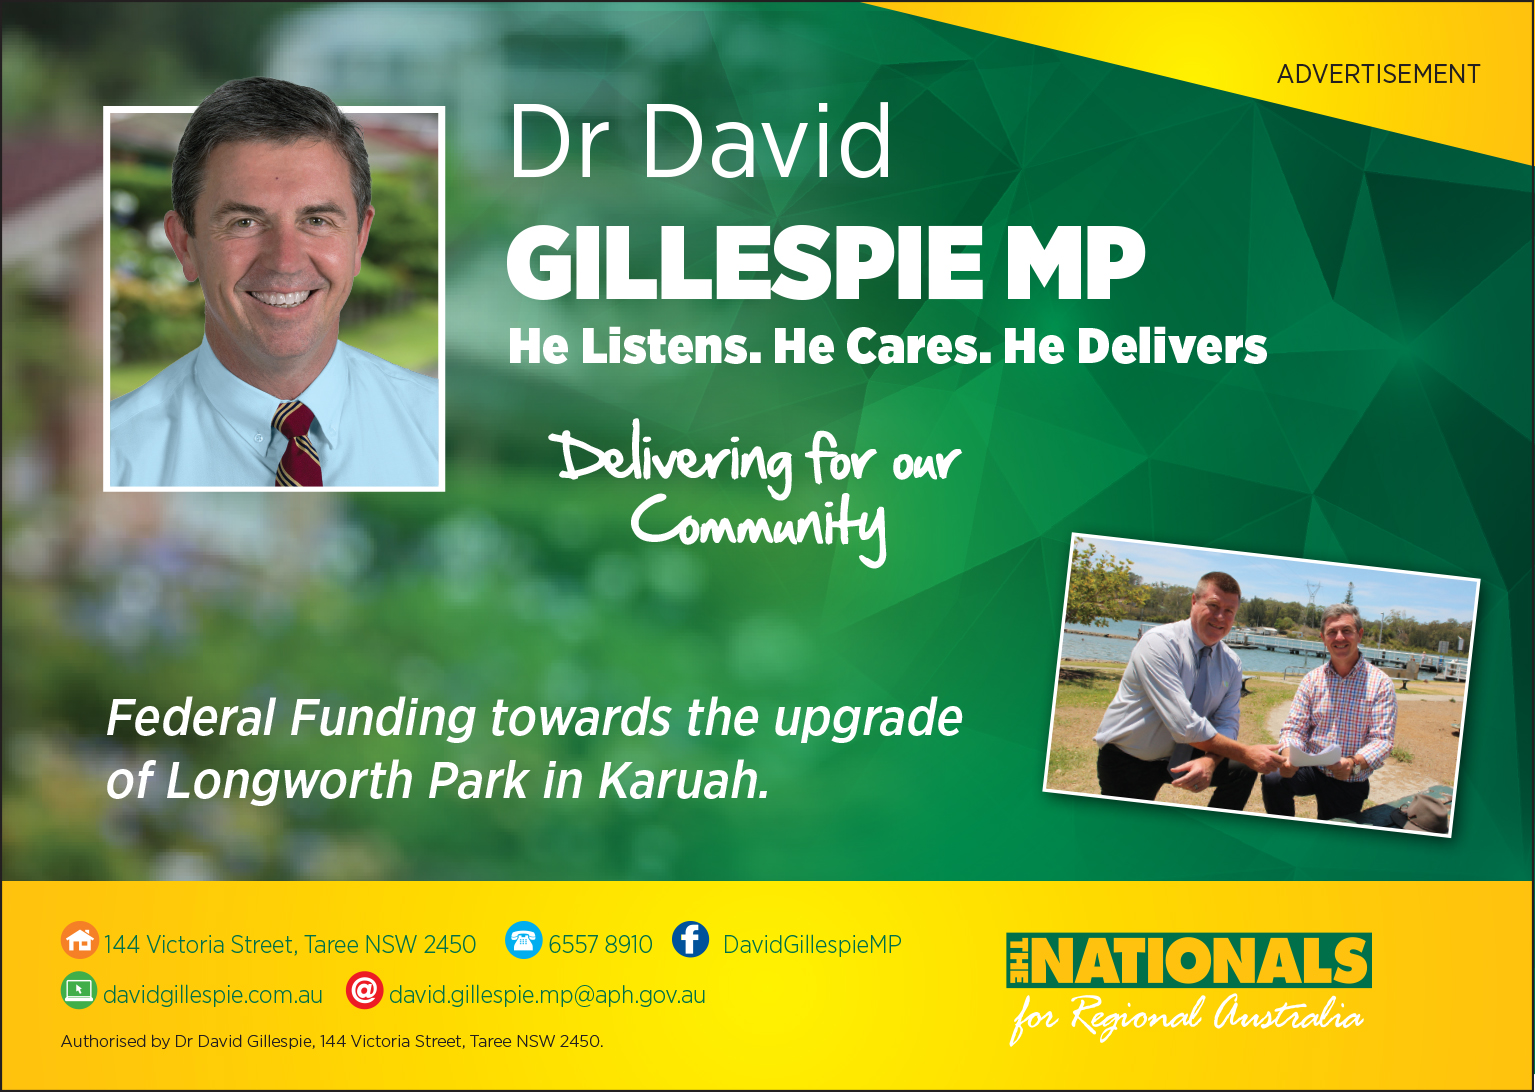 Dr David Gillespie MP -Member for Lyne